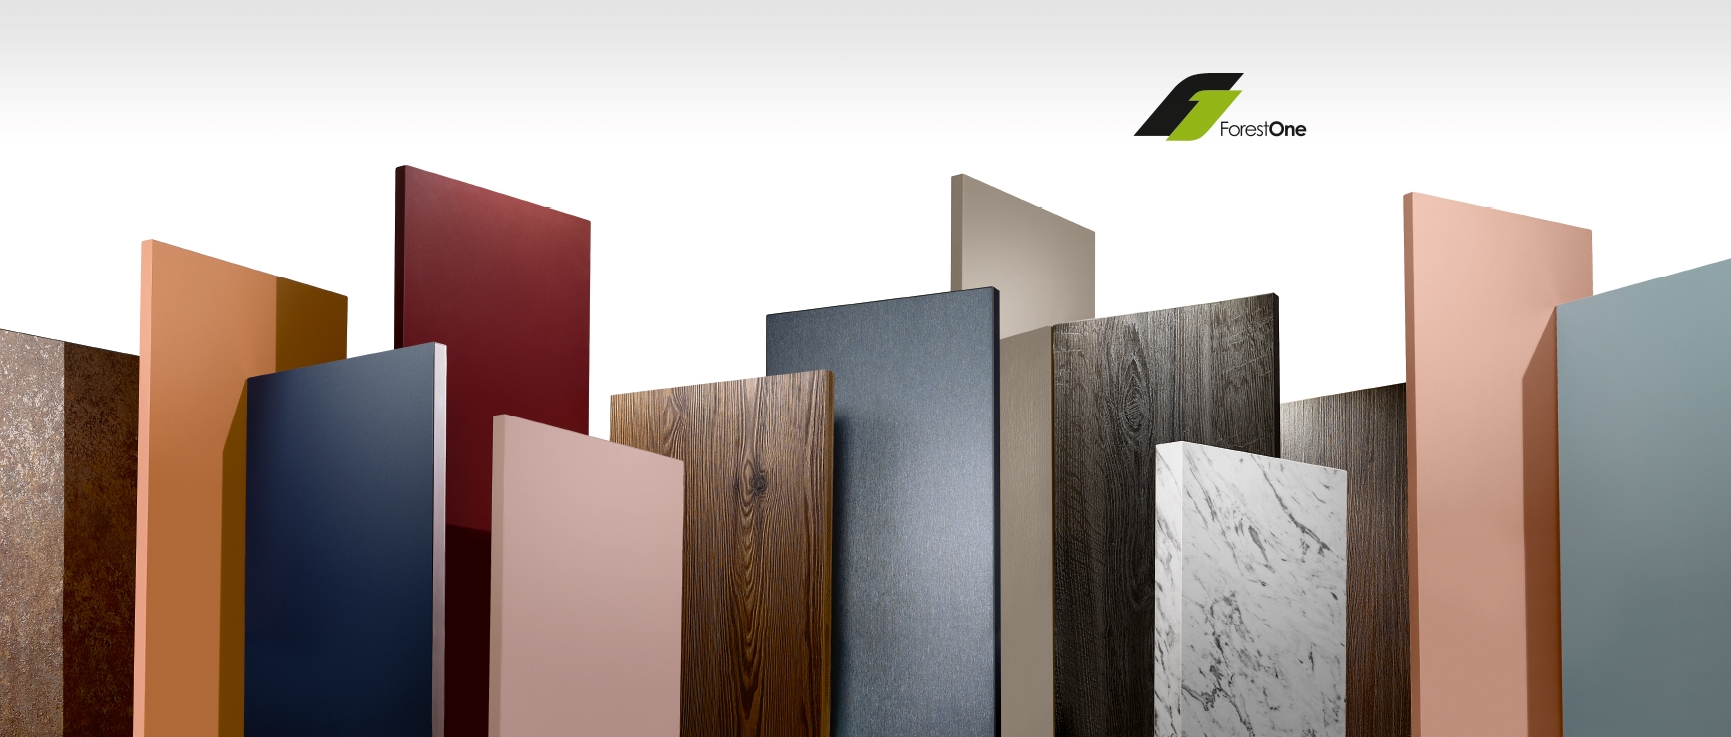 ForestOne - Our new National Decorative Products Distributor in Australia